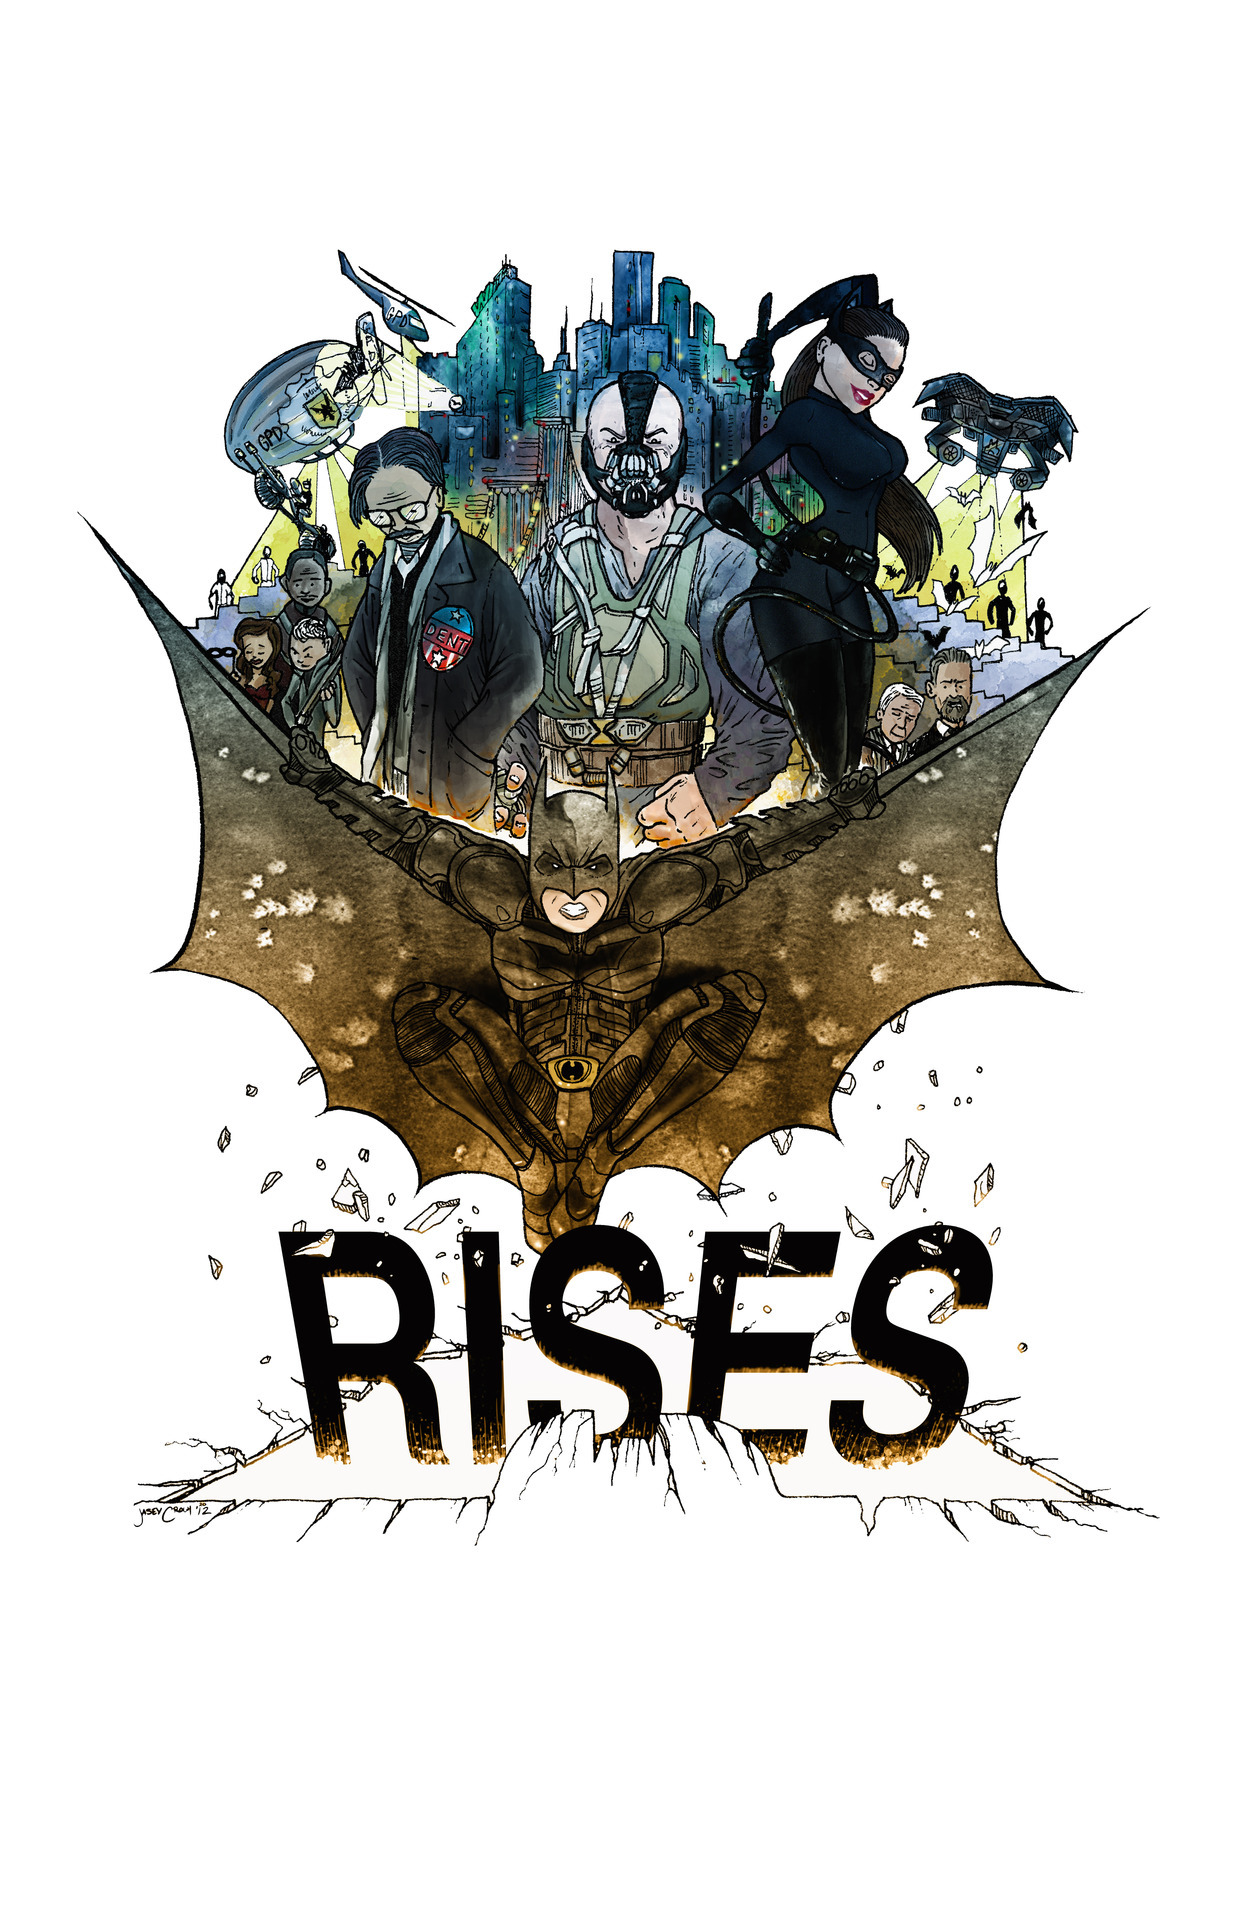 HE IS RISEN INDEED!!! The Dark Knight Rises -http://society6.com/jaseycrowlLimited Edition whiteAmerican Apparel Organic Fine Jersey T-shirts are made with 100% USDA Certified Organic cotton combed for softness and comfort & American Apparel Fine Jersey T-shirts are made with 100% fine jersey cotton combed for softness and comfort.Batman recommends you read the new book you're COLOR by Jasey Crowl @ http://yourecolor.comOriginal art and writing © Jasey Crowl 2012 http://jaseycrowl.com